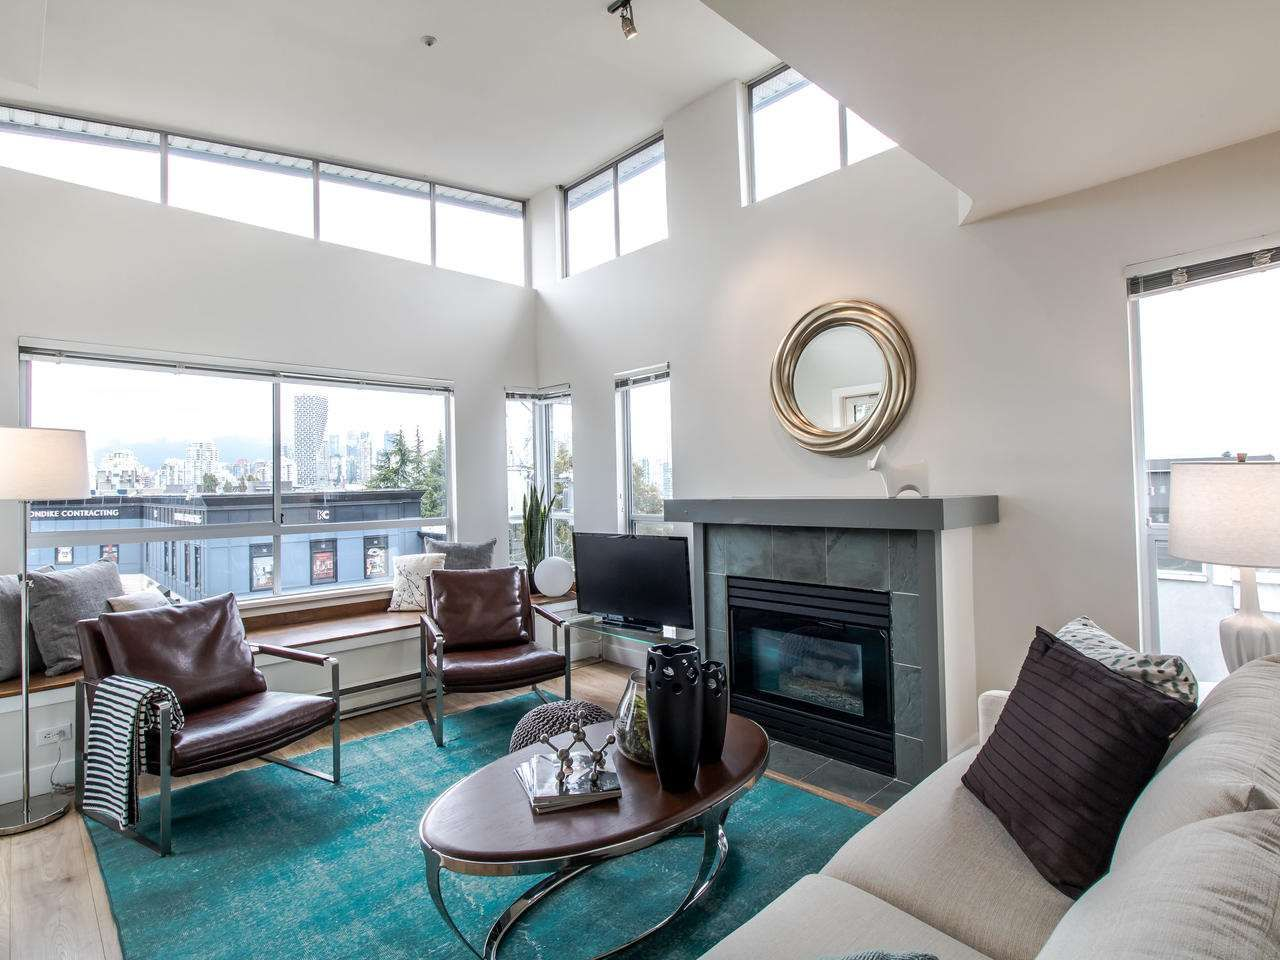 """Main Photo: 16 1388 W 6TH Avenue in Vancouver: Fairview VW Condo for sale in """"NOTTINGHAM"""" (Vancouver West)  : MLS®# R2411492"""